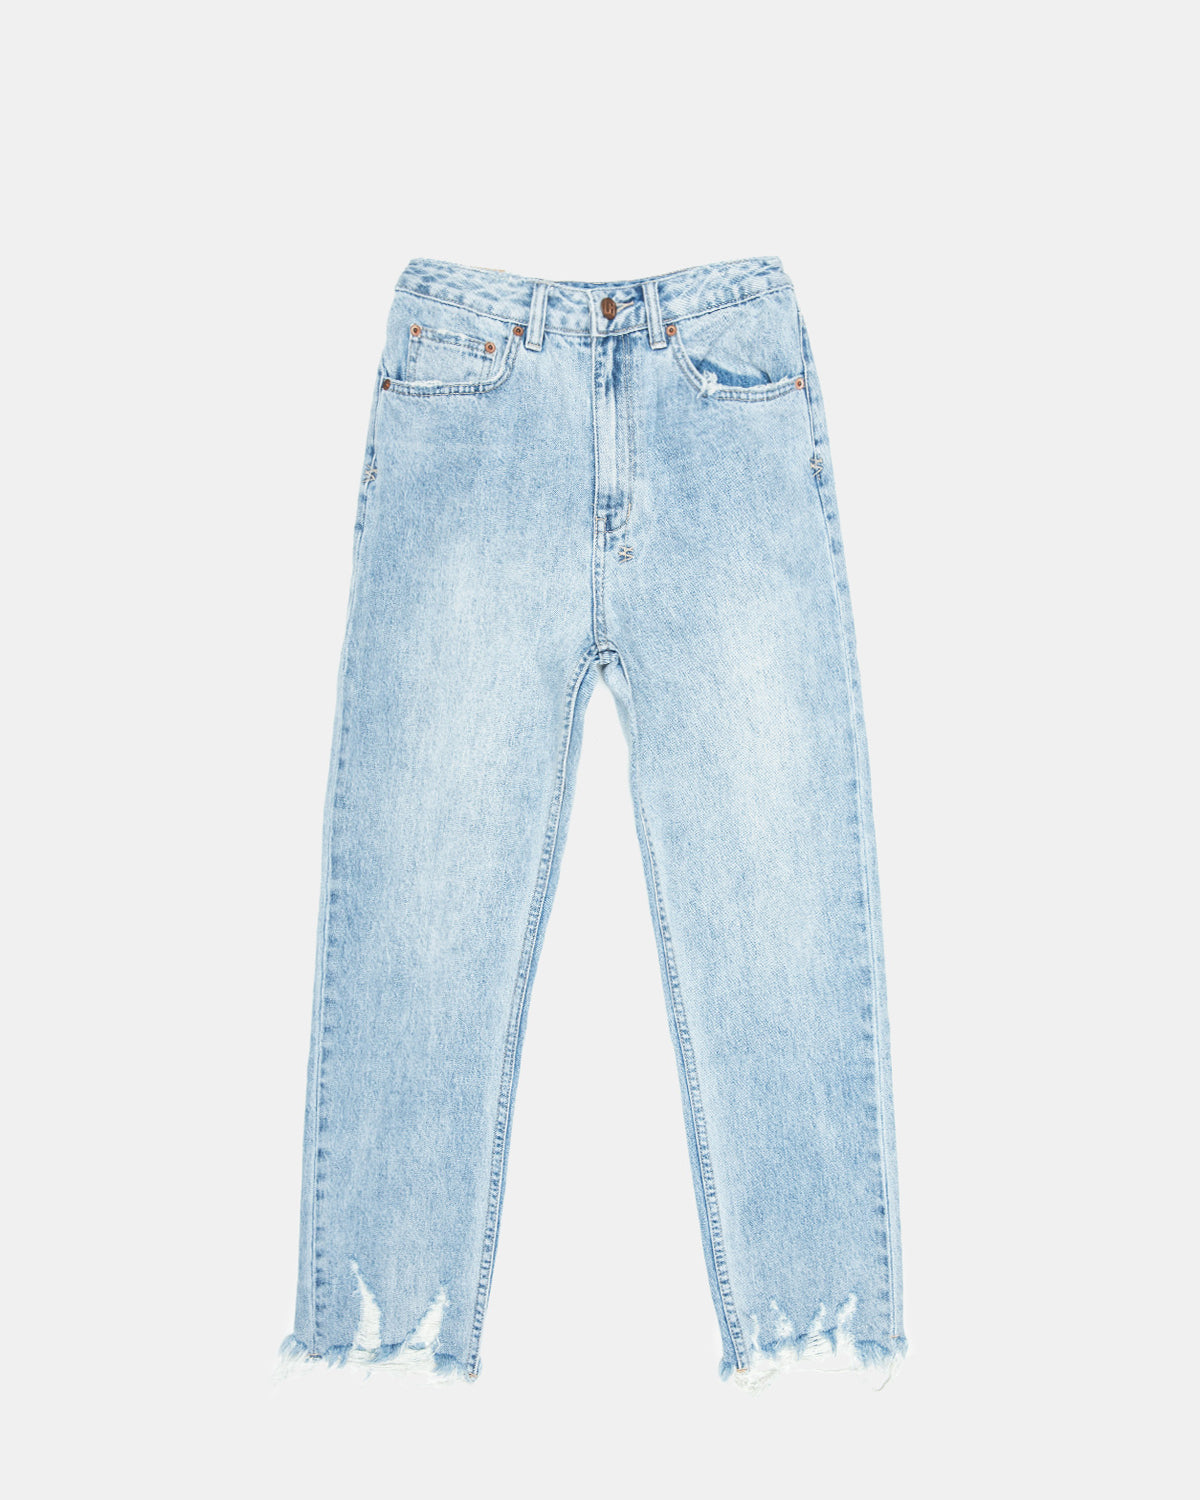 Ksubi - Women's Chloe Wasted Super Clean Freak Jeans (Blue)